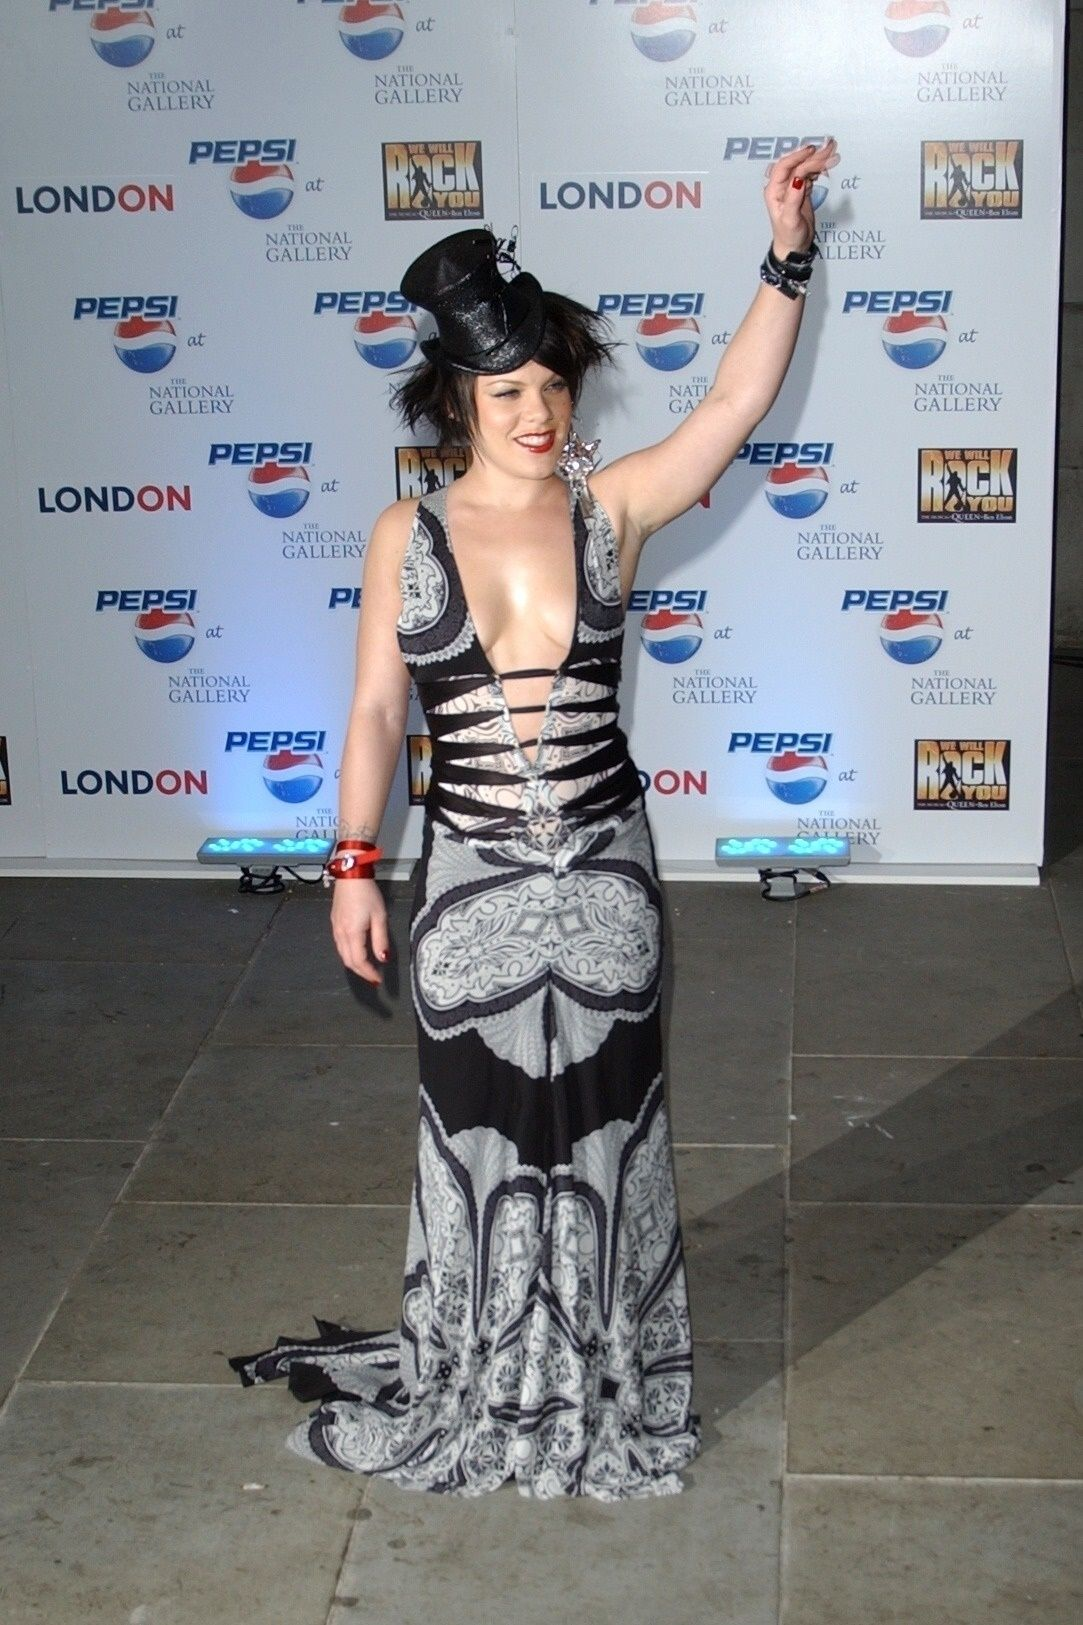 P!nk Shows Off Her Tits At Pepsi Event In Trafalgar Square In London 0009